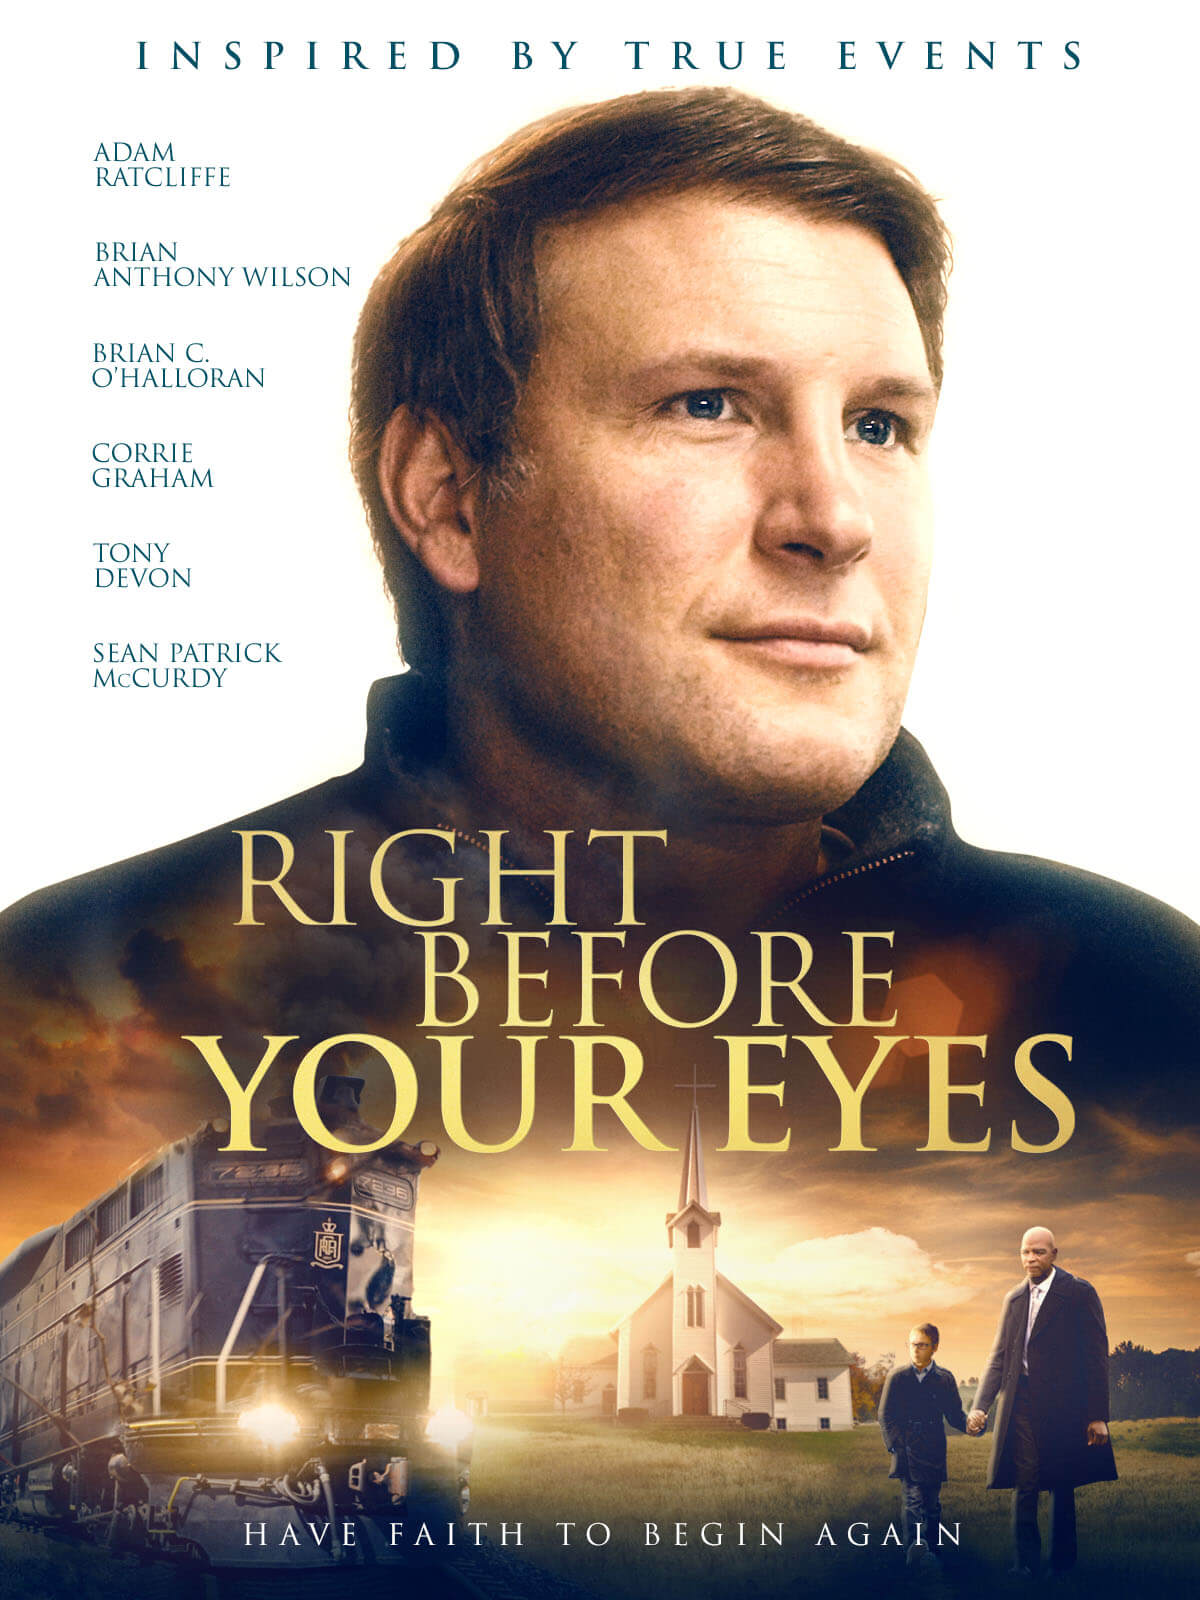 Right Before Your Eyes 1200x1600 1 RIGHT BEFORE YOUR EYES